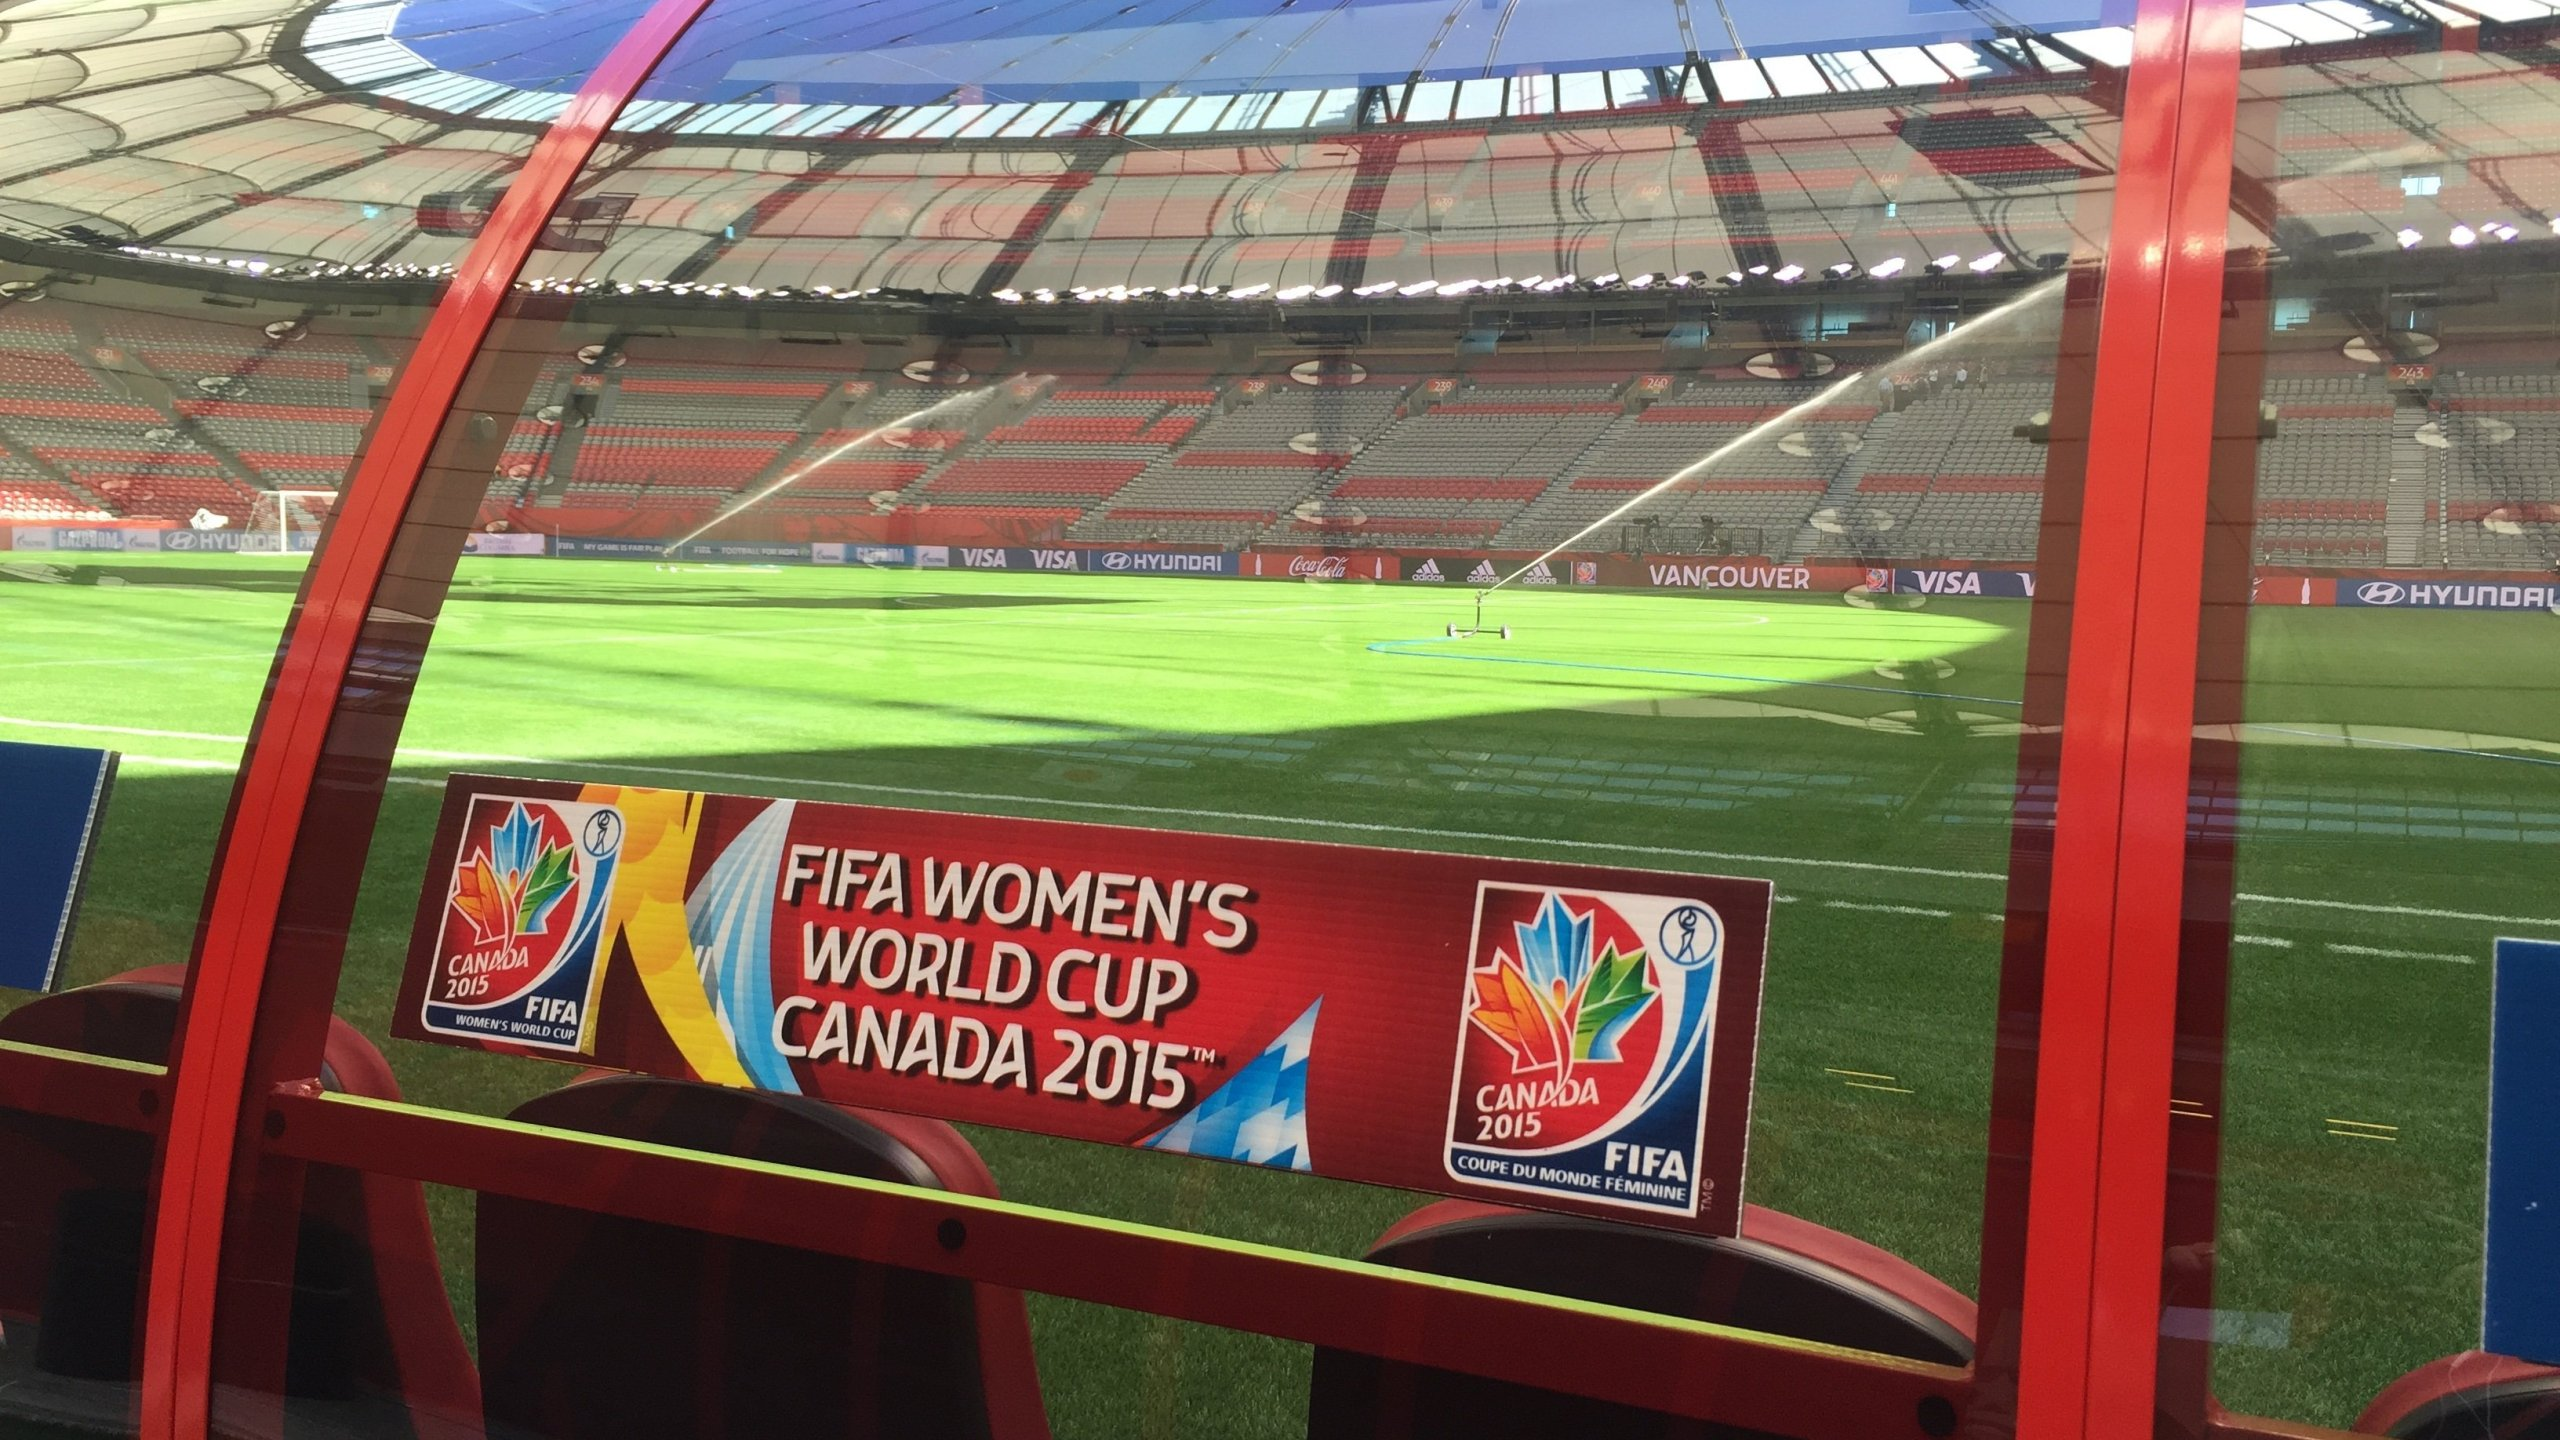 BC Place Stadium is home to the 2015 Women's World Cup Final in Vancouver, Canada. (Photo: CNN)